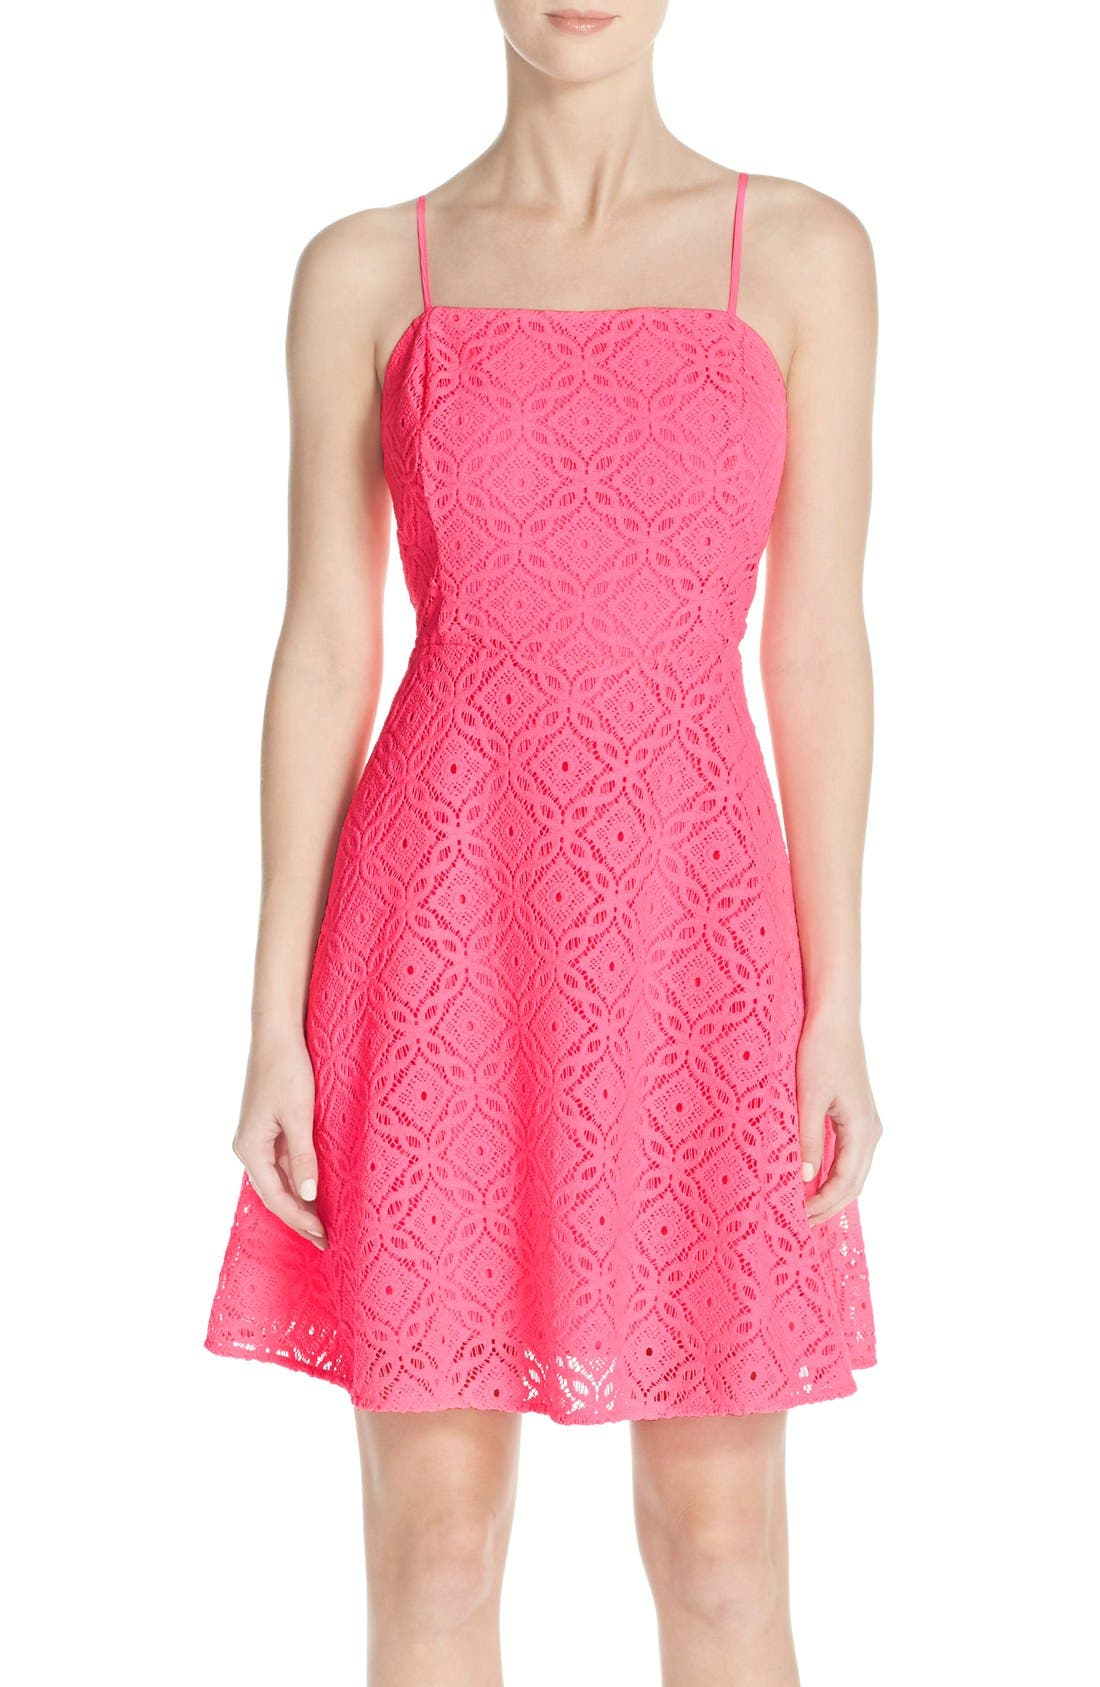 Alternate Image 1 Selected - Lilly Pulitzer® 'Jennilee' Lace Fit & Flare Dress